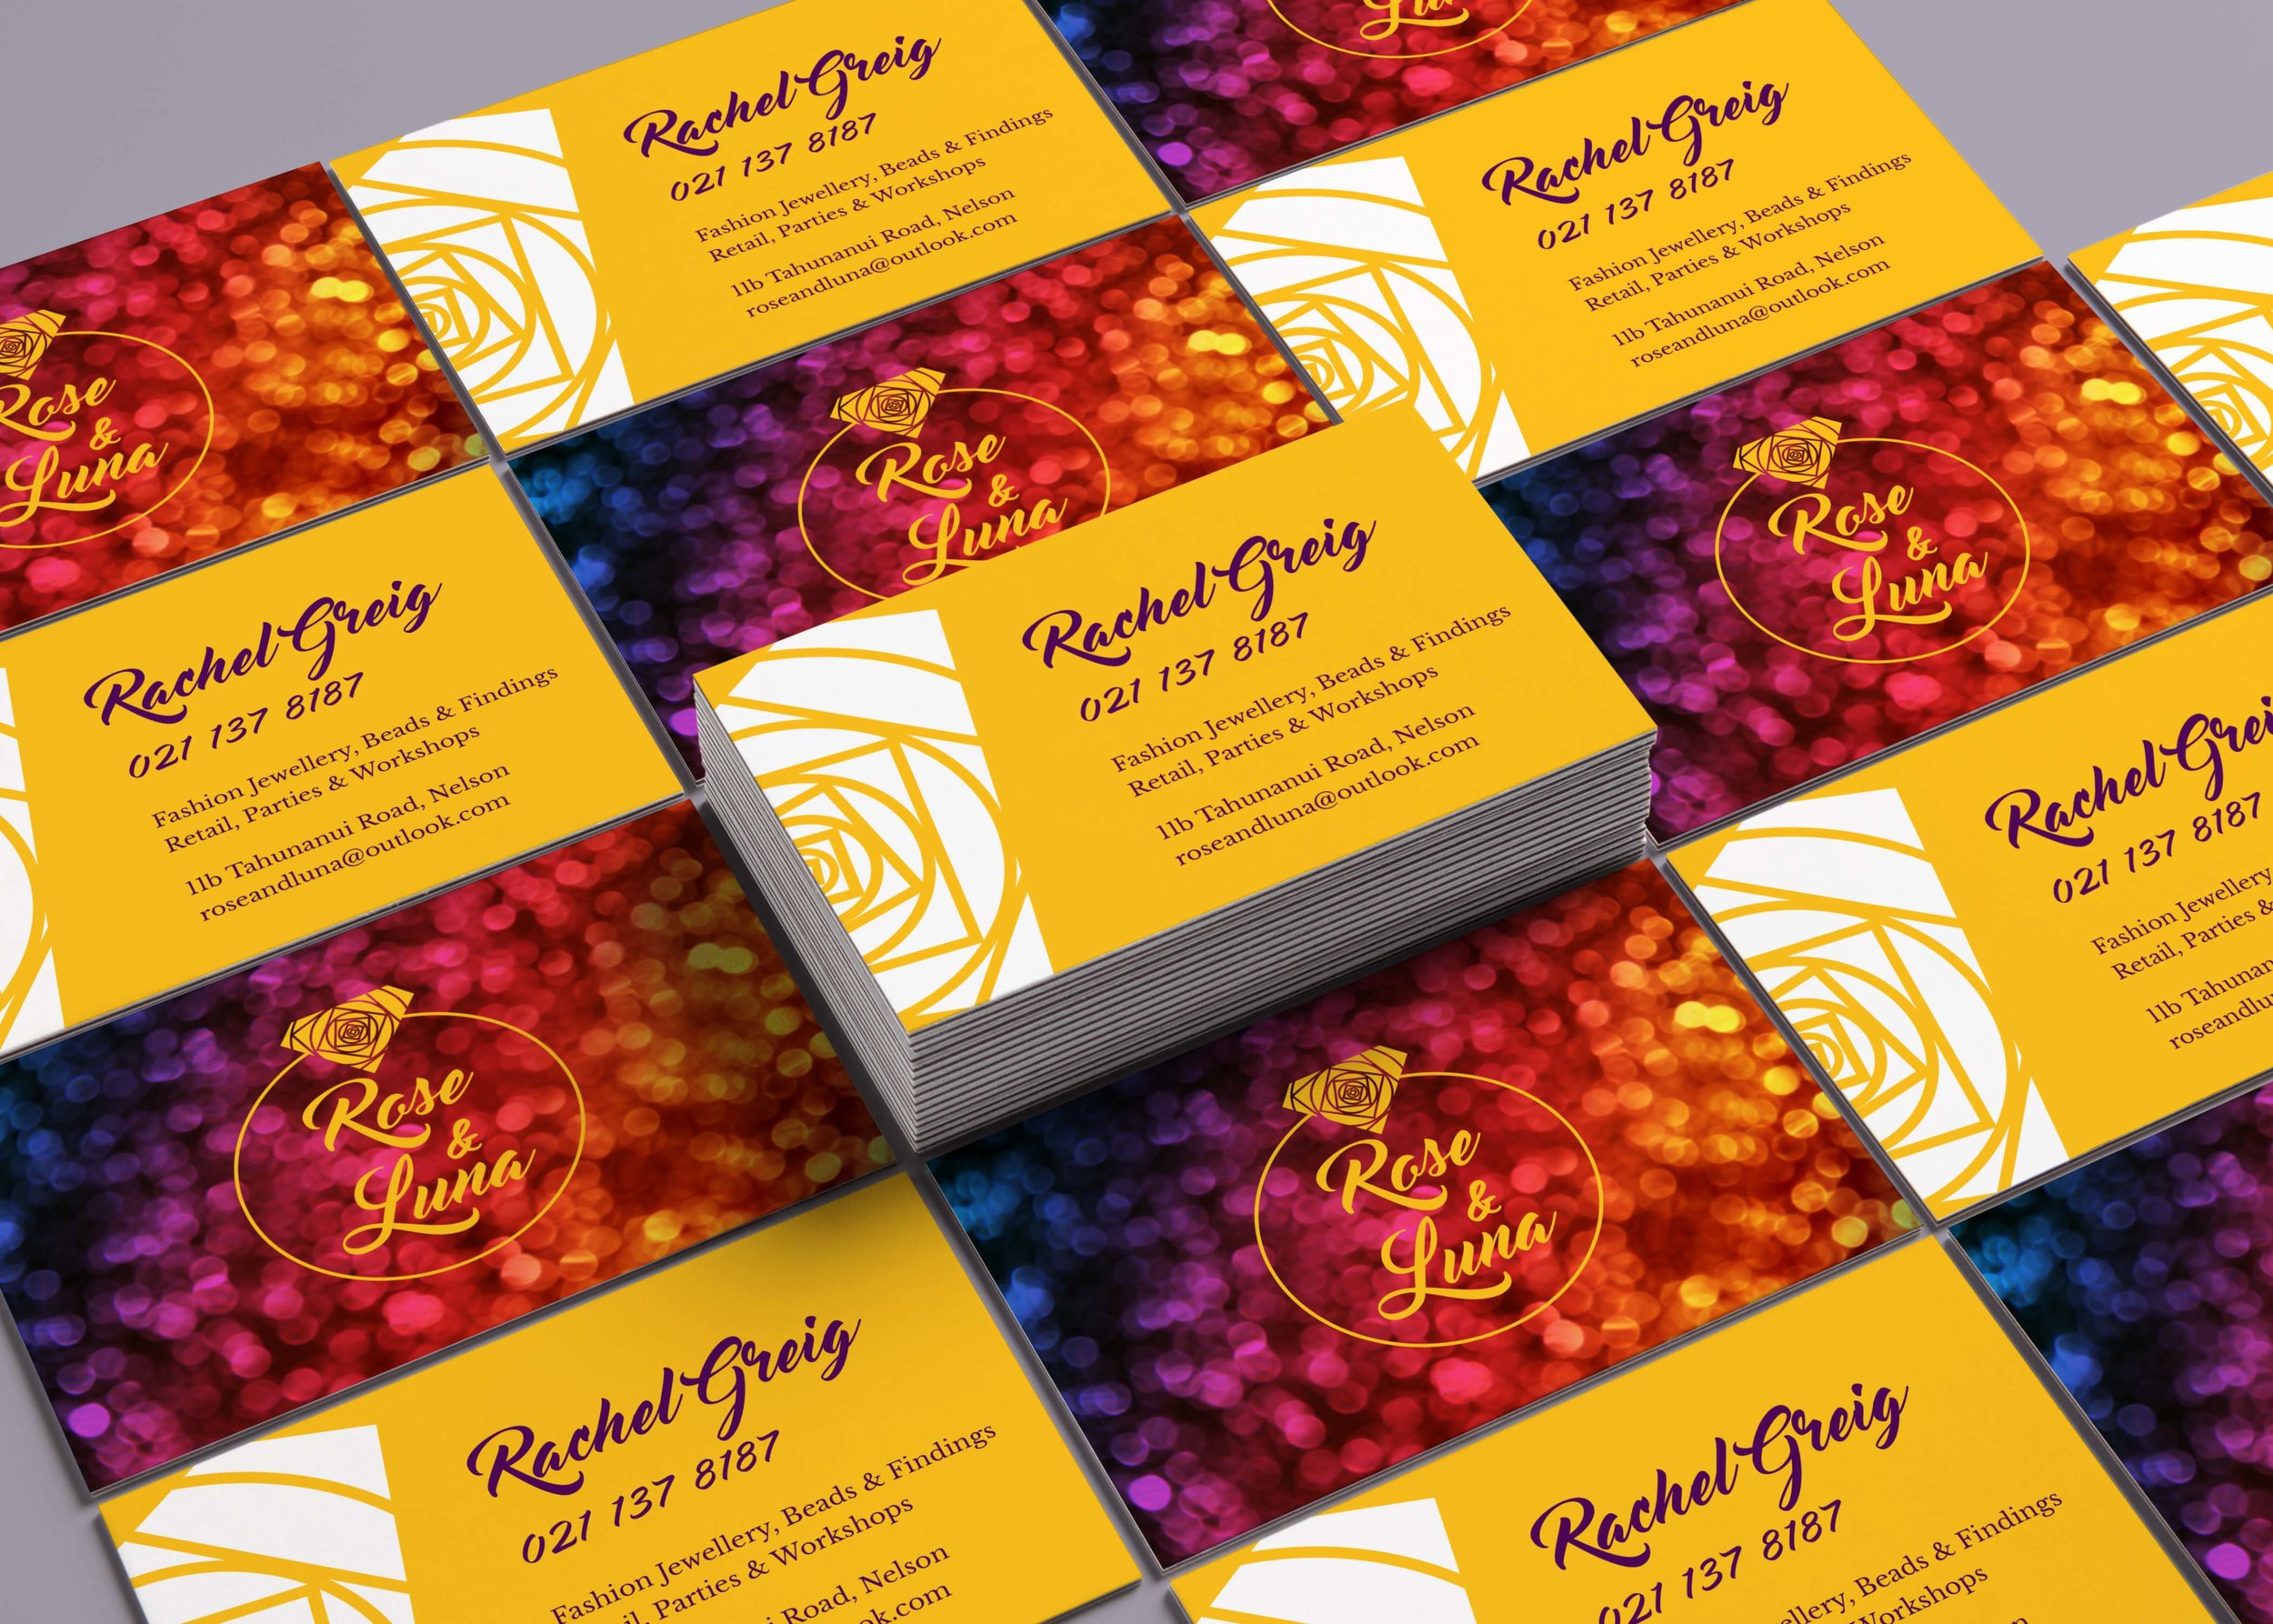 Biz card_RLJ_yellow front.jpg